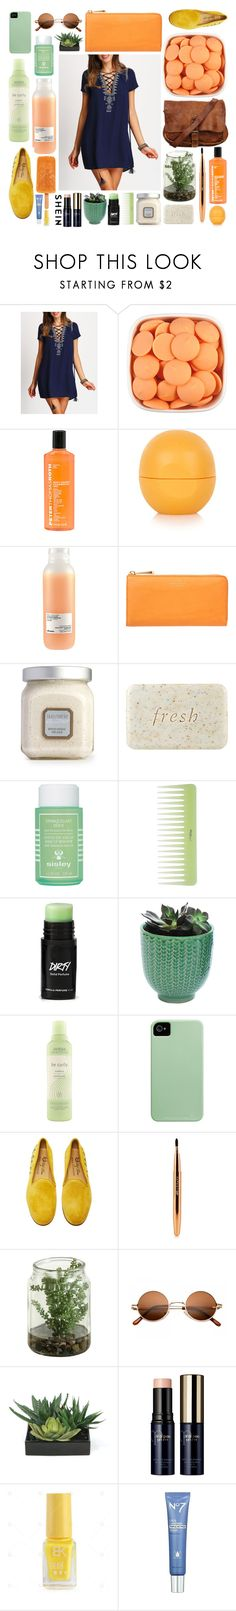 """Little things"" by beautiful-723 ❤ liked on Polyvore featuring Peter Thomas Roth, Topshop, Davines, Smythson, Laura Mercier, Fresh, Sisley, Dot & Bo, Aveda and Del Toro"